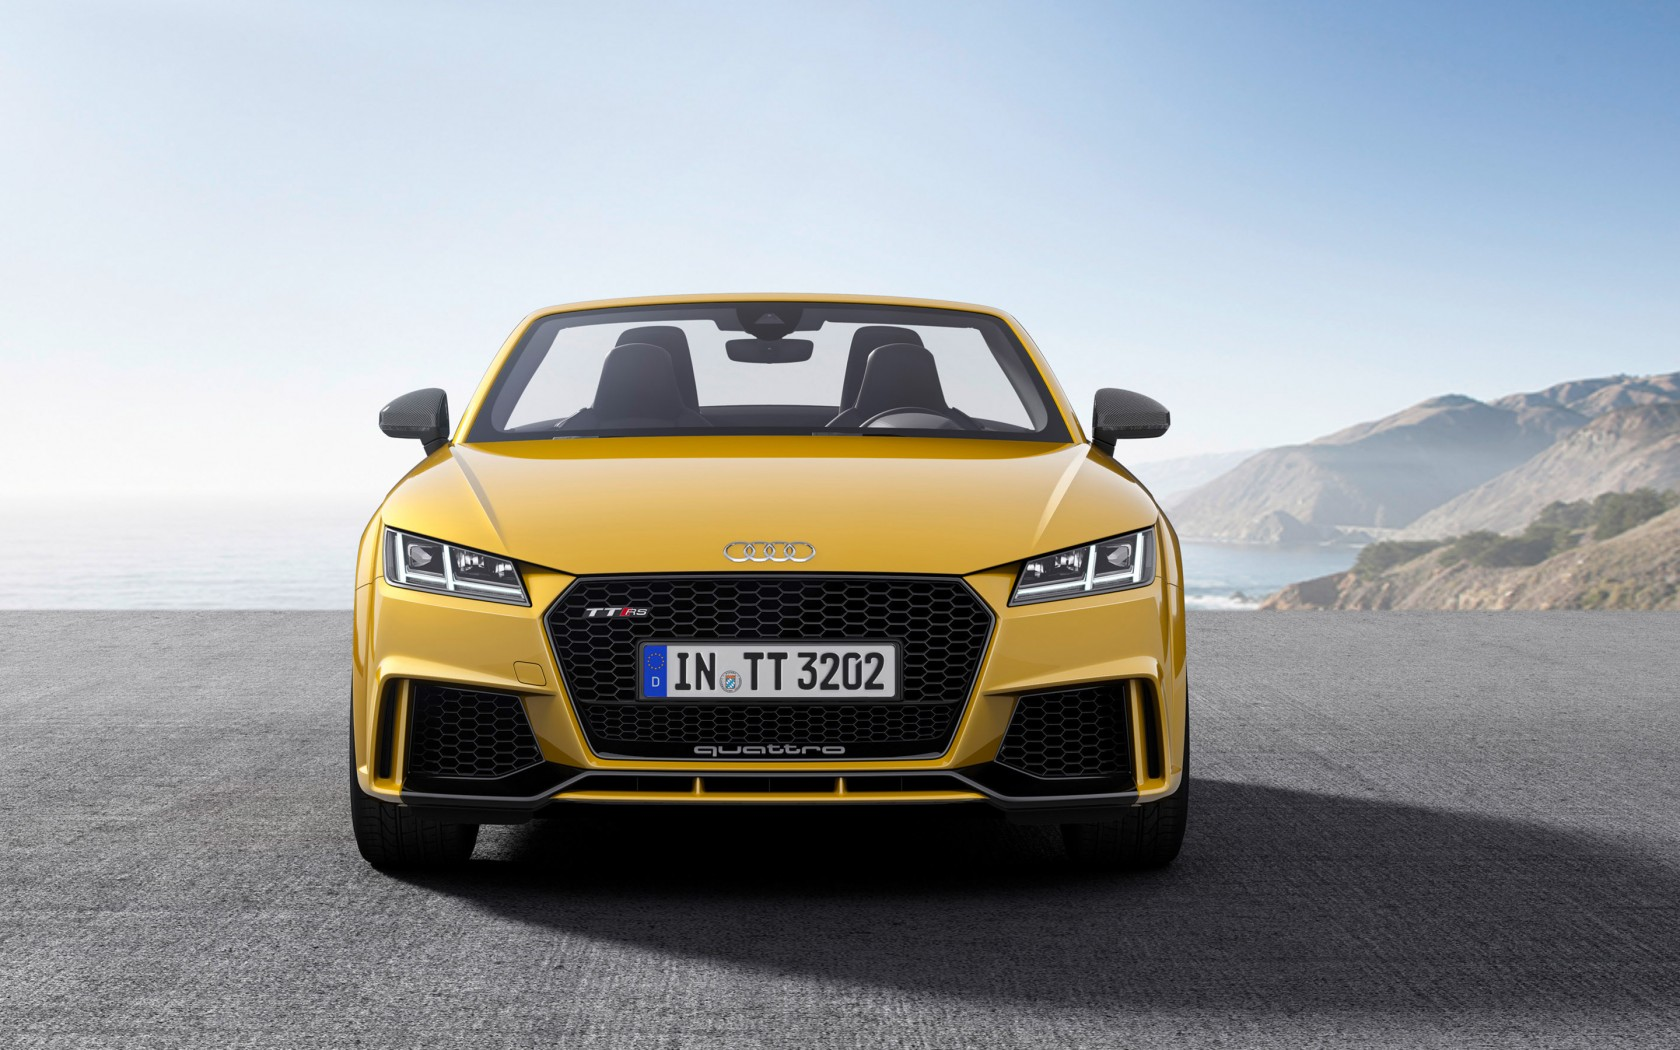 2017 Audi TT RS Roadster Wallpaper | HD Car Wallpapers